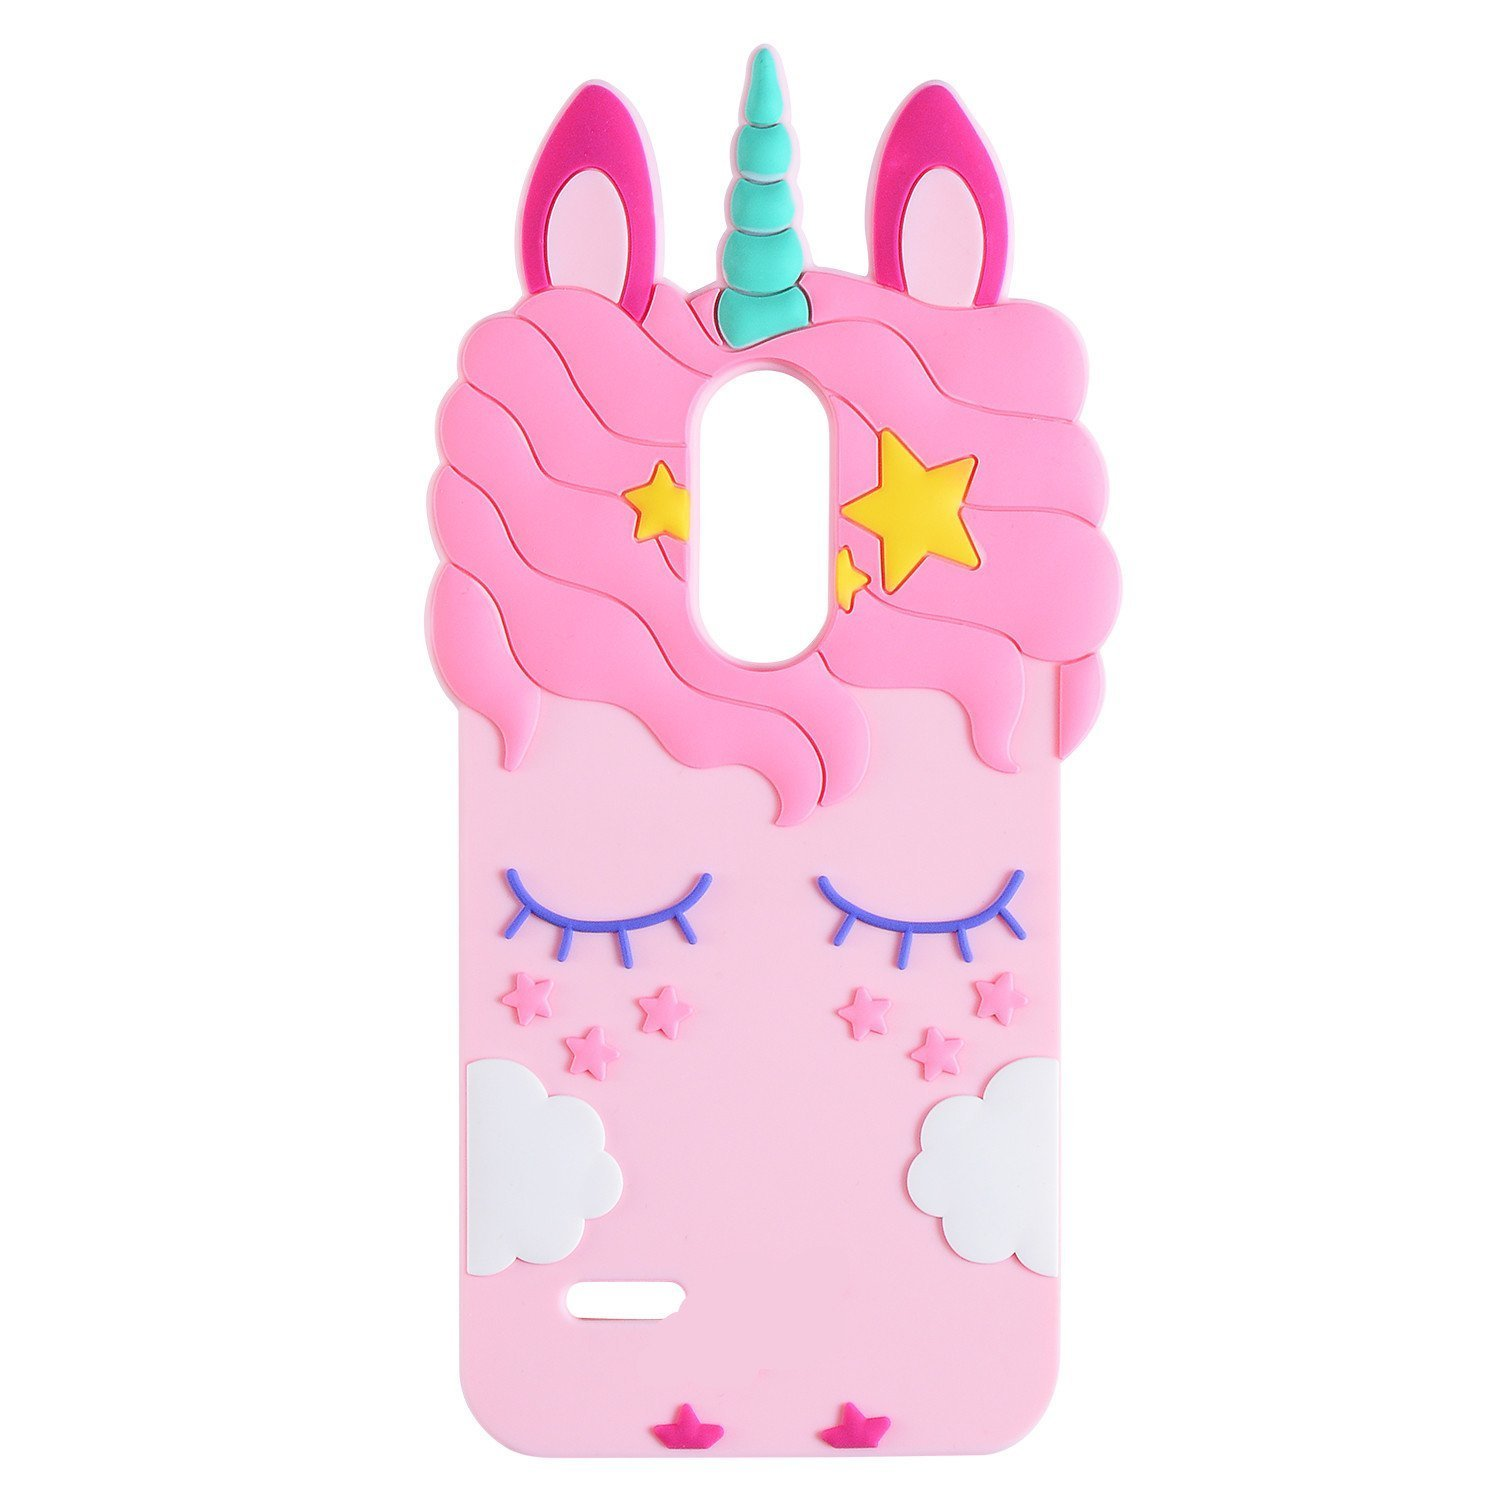 Cat Case for LG K4 2017, SevenPanda Cartoon Silicone Cute Adorable 3D Lovely Fashion Unicorn Cat Funny Shockproof Protective Soft Cover for LG K4 2017 - Pink LGK4(2017)-JinSiMao-Fen